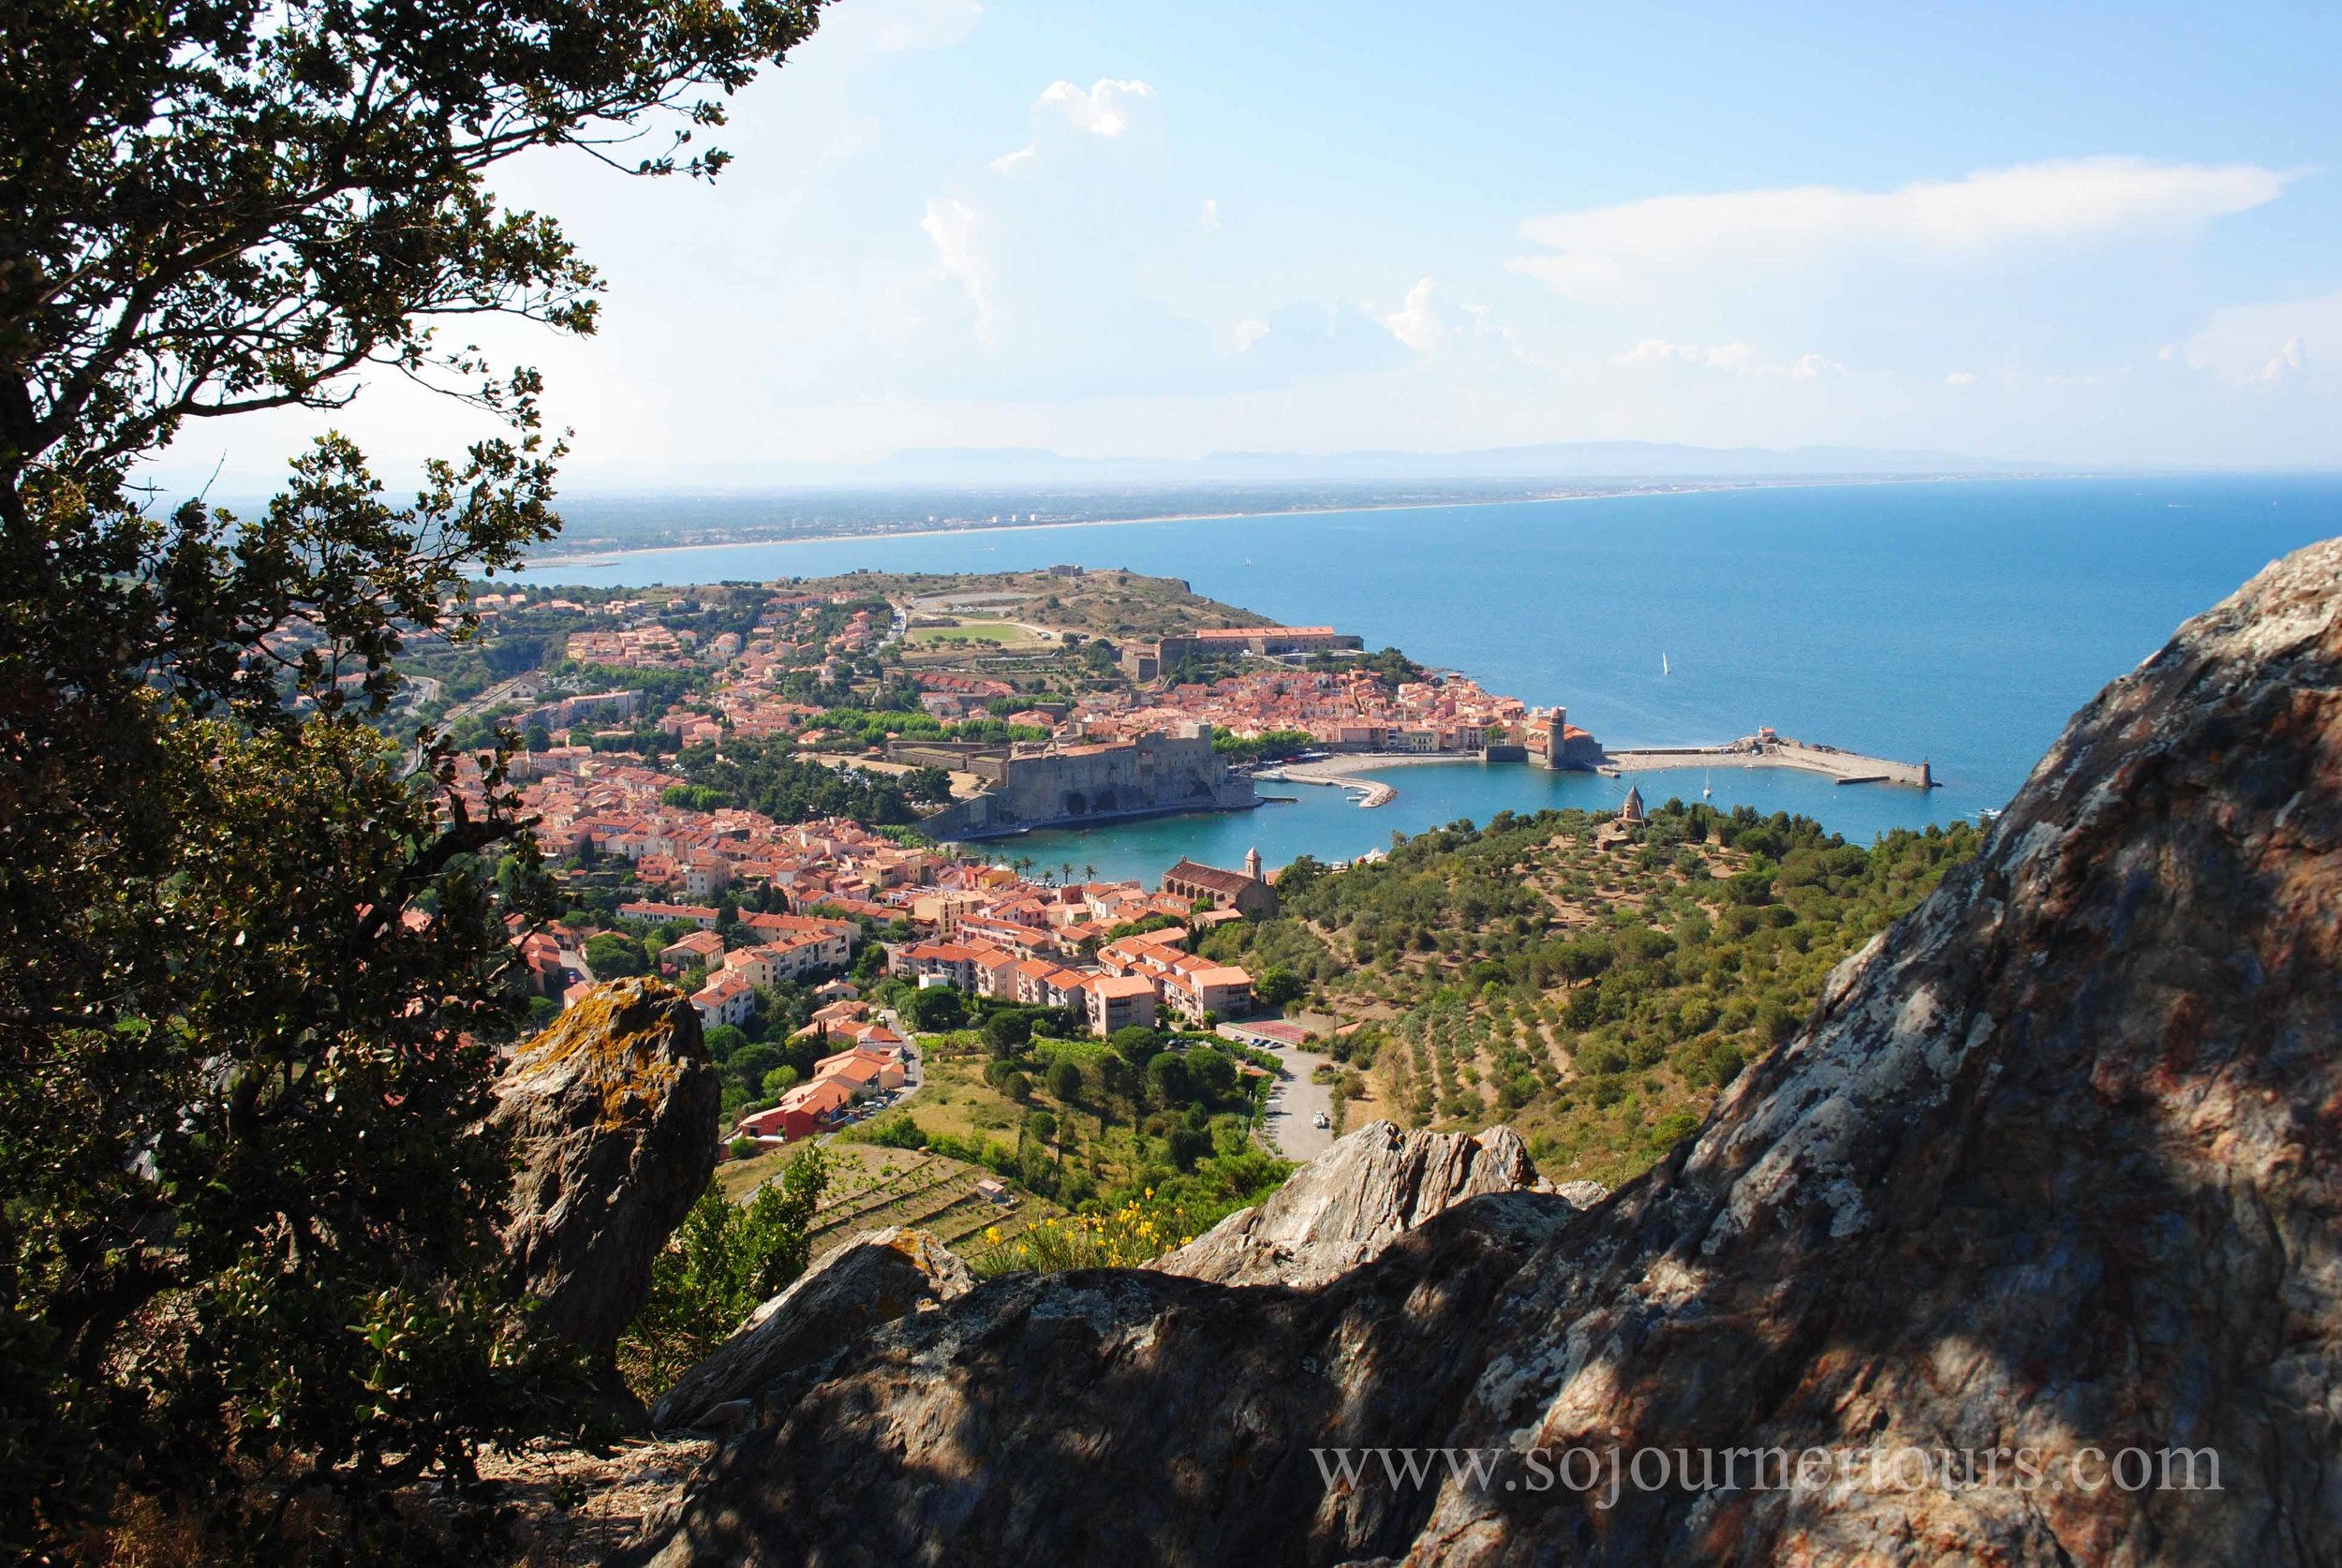 View of Collioure from Fort St. Elme